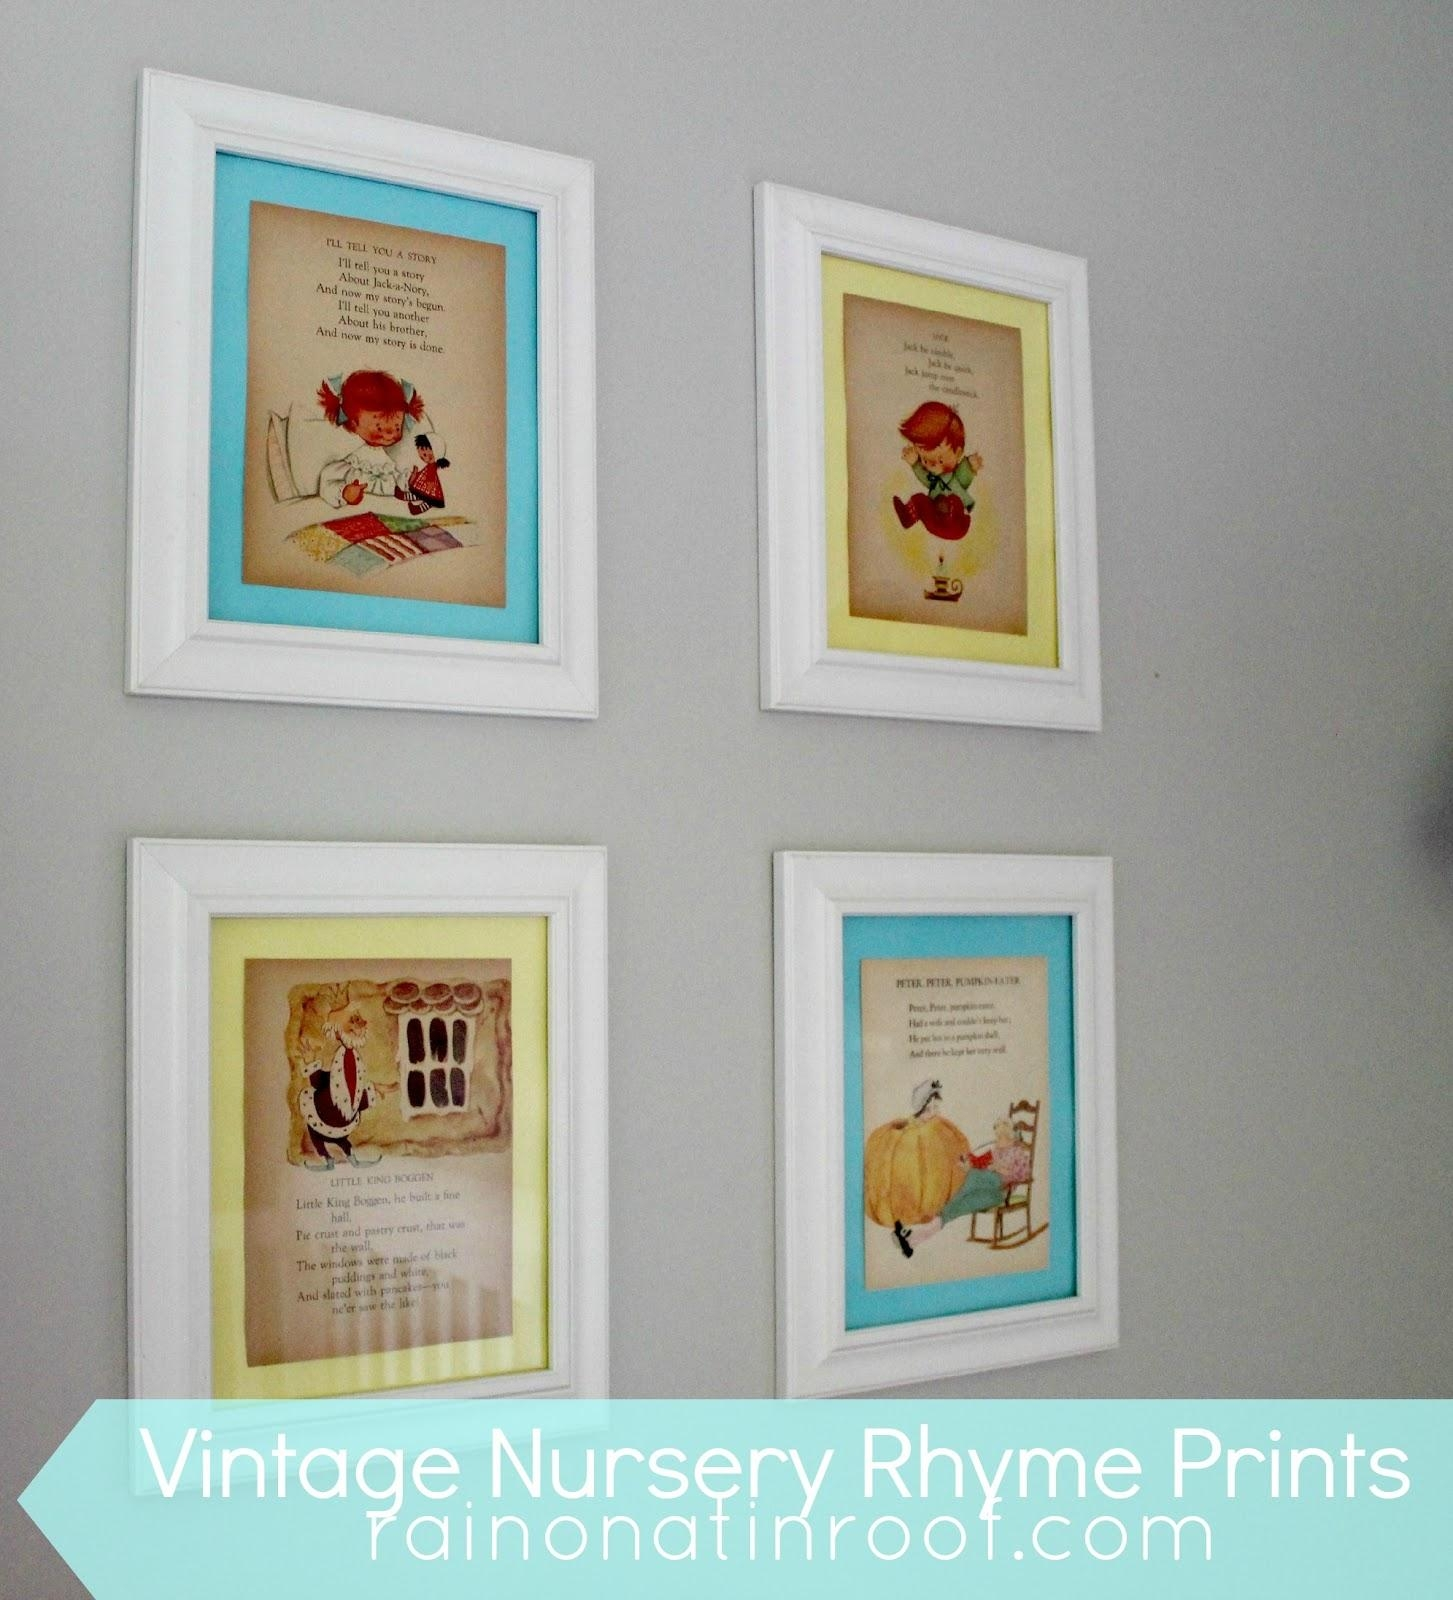 Diy Vintage Nursery Rhyme Prints: Simple & Cheap Regarding Nursery Framed Wall Art (Image 5 of 20)